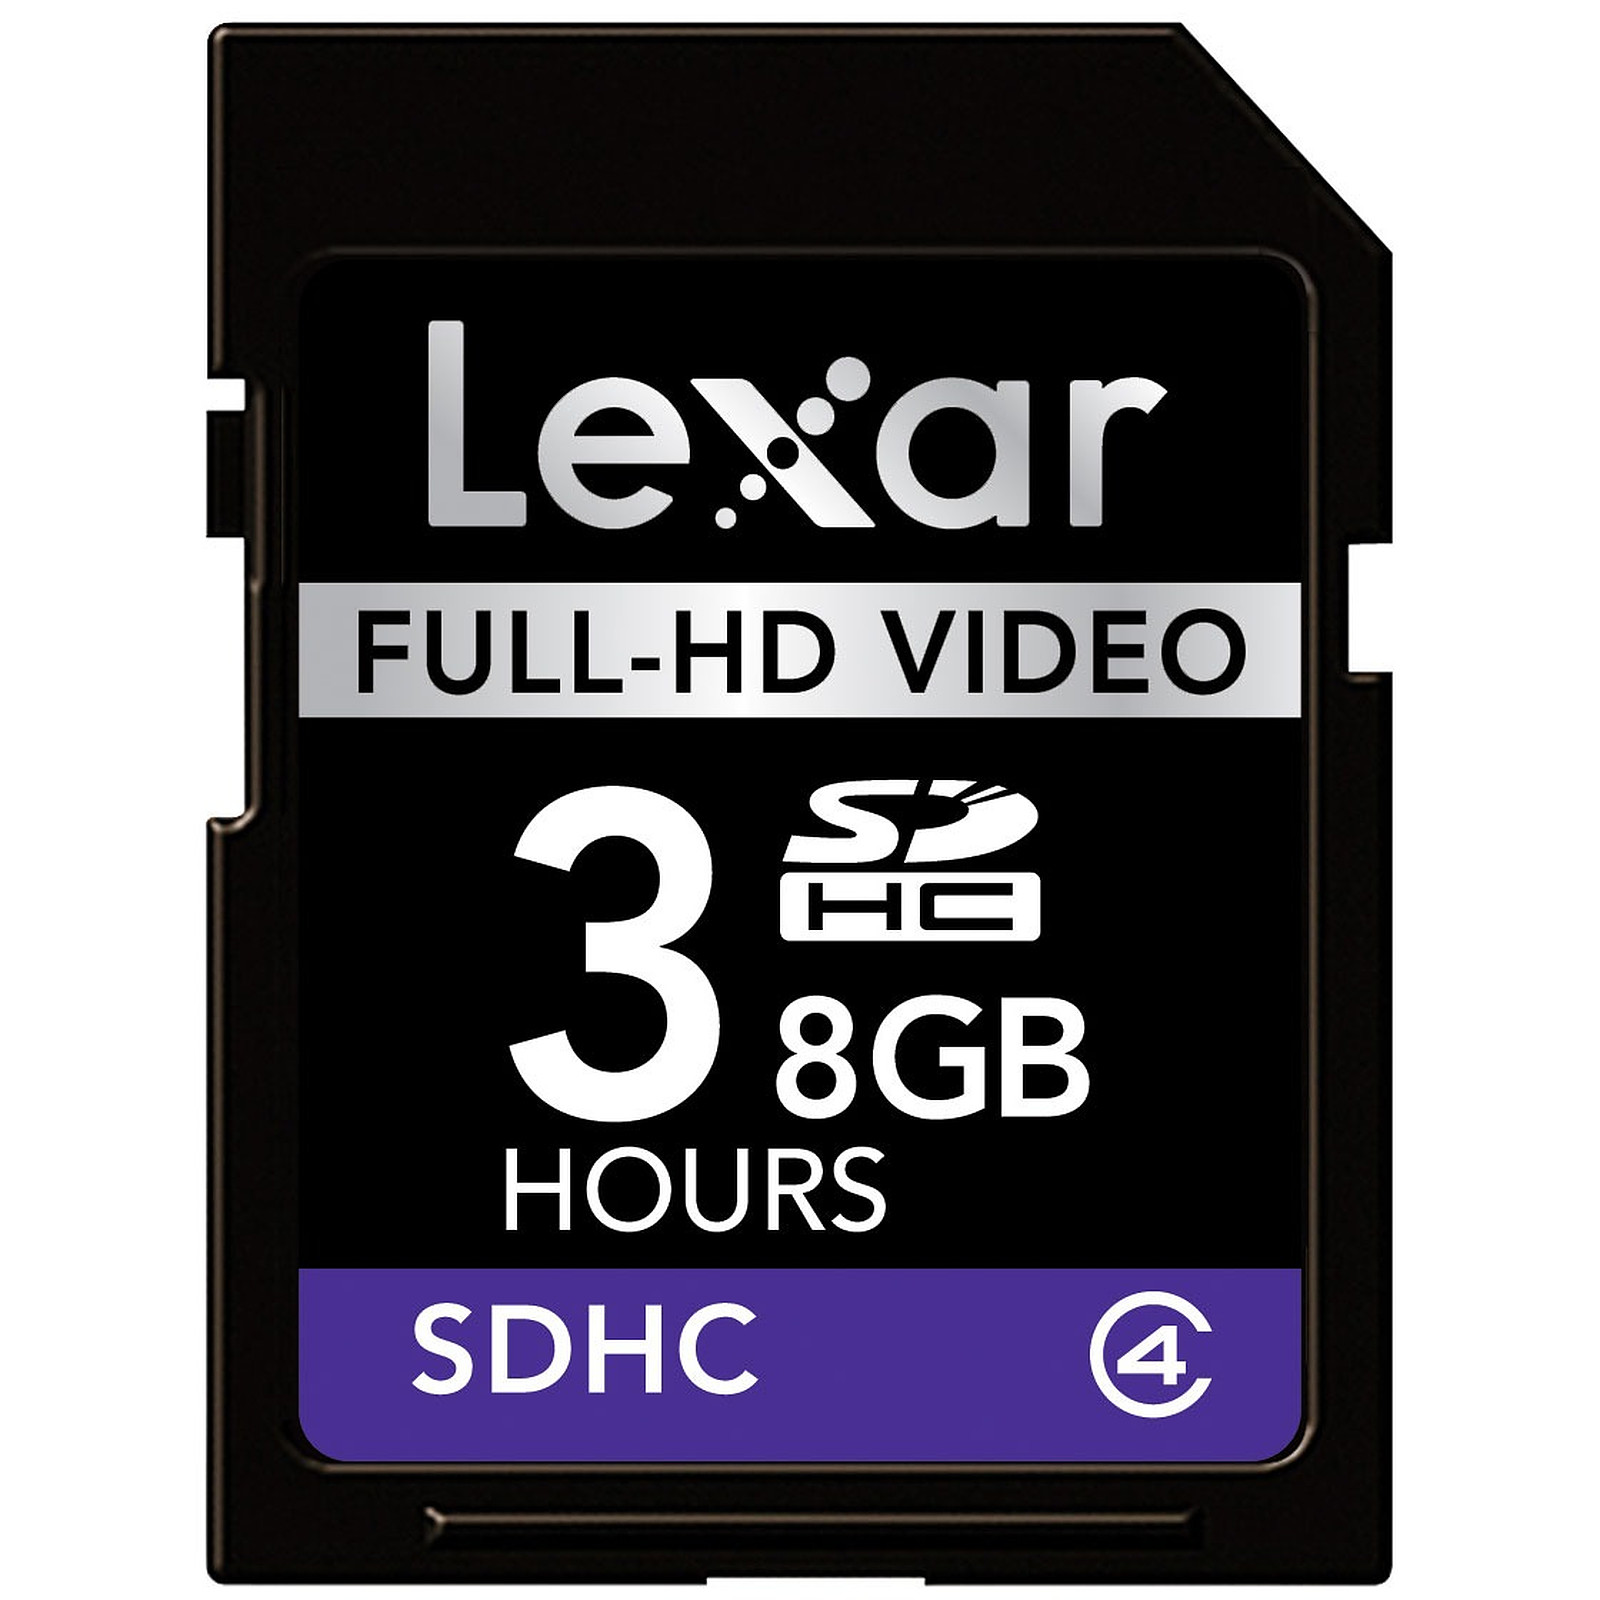 Lexar Carte SDHC Full-HD Video - 8 Go